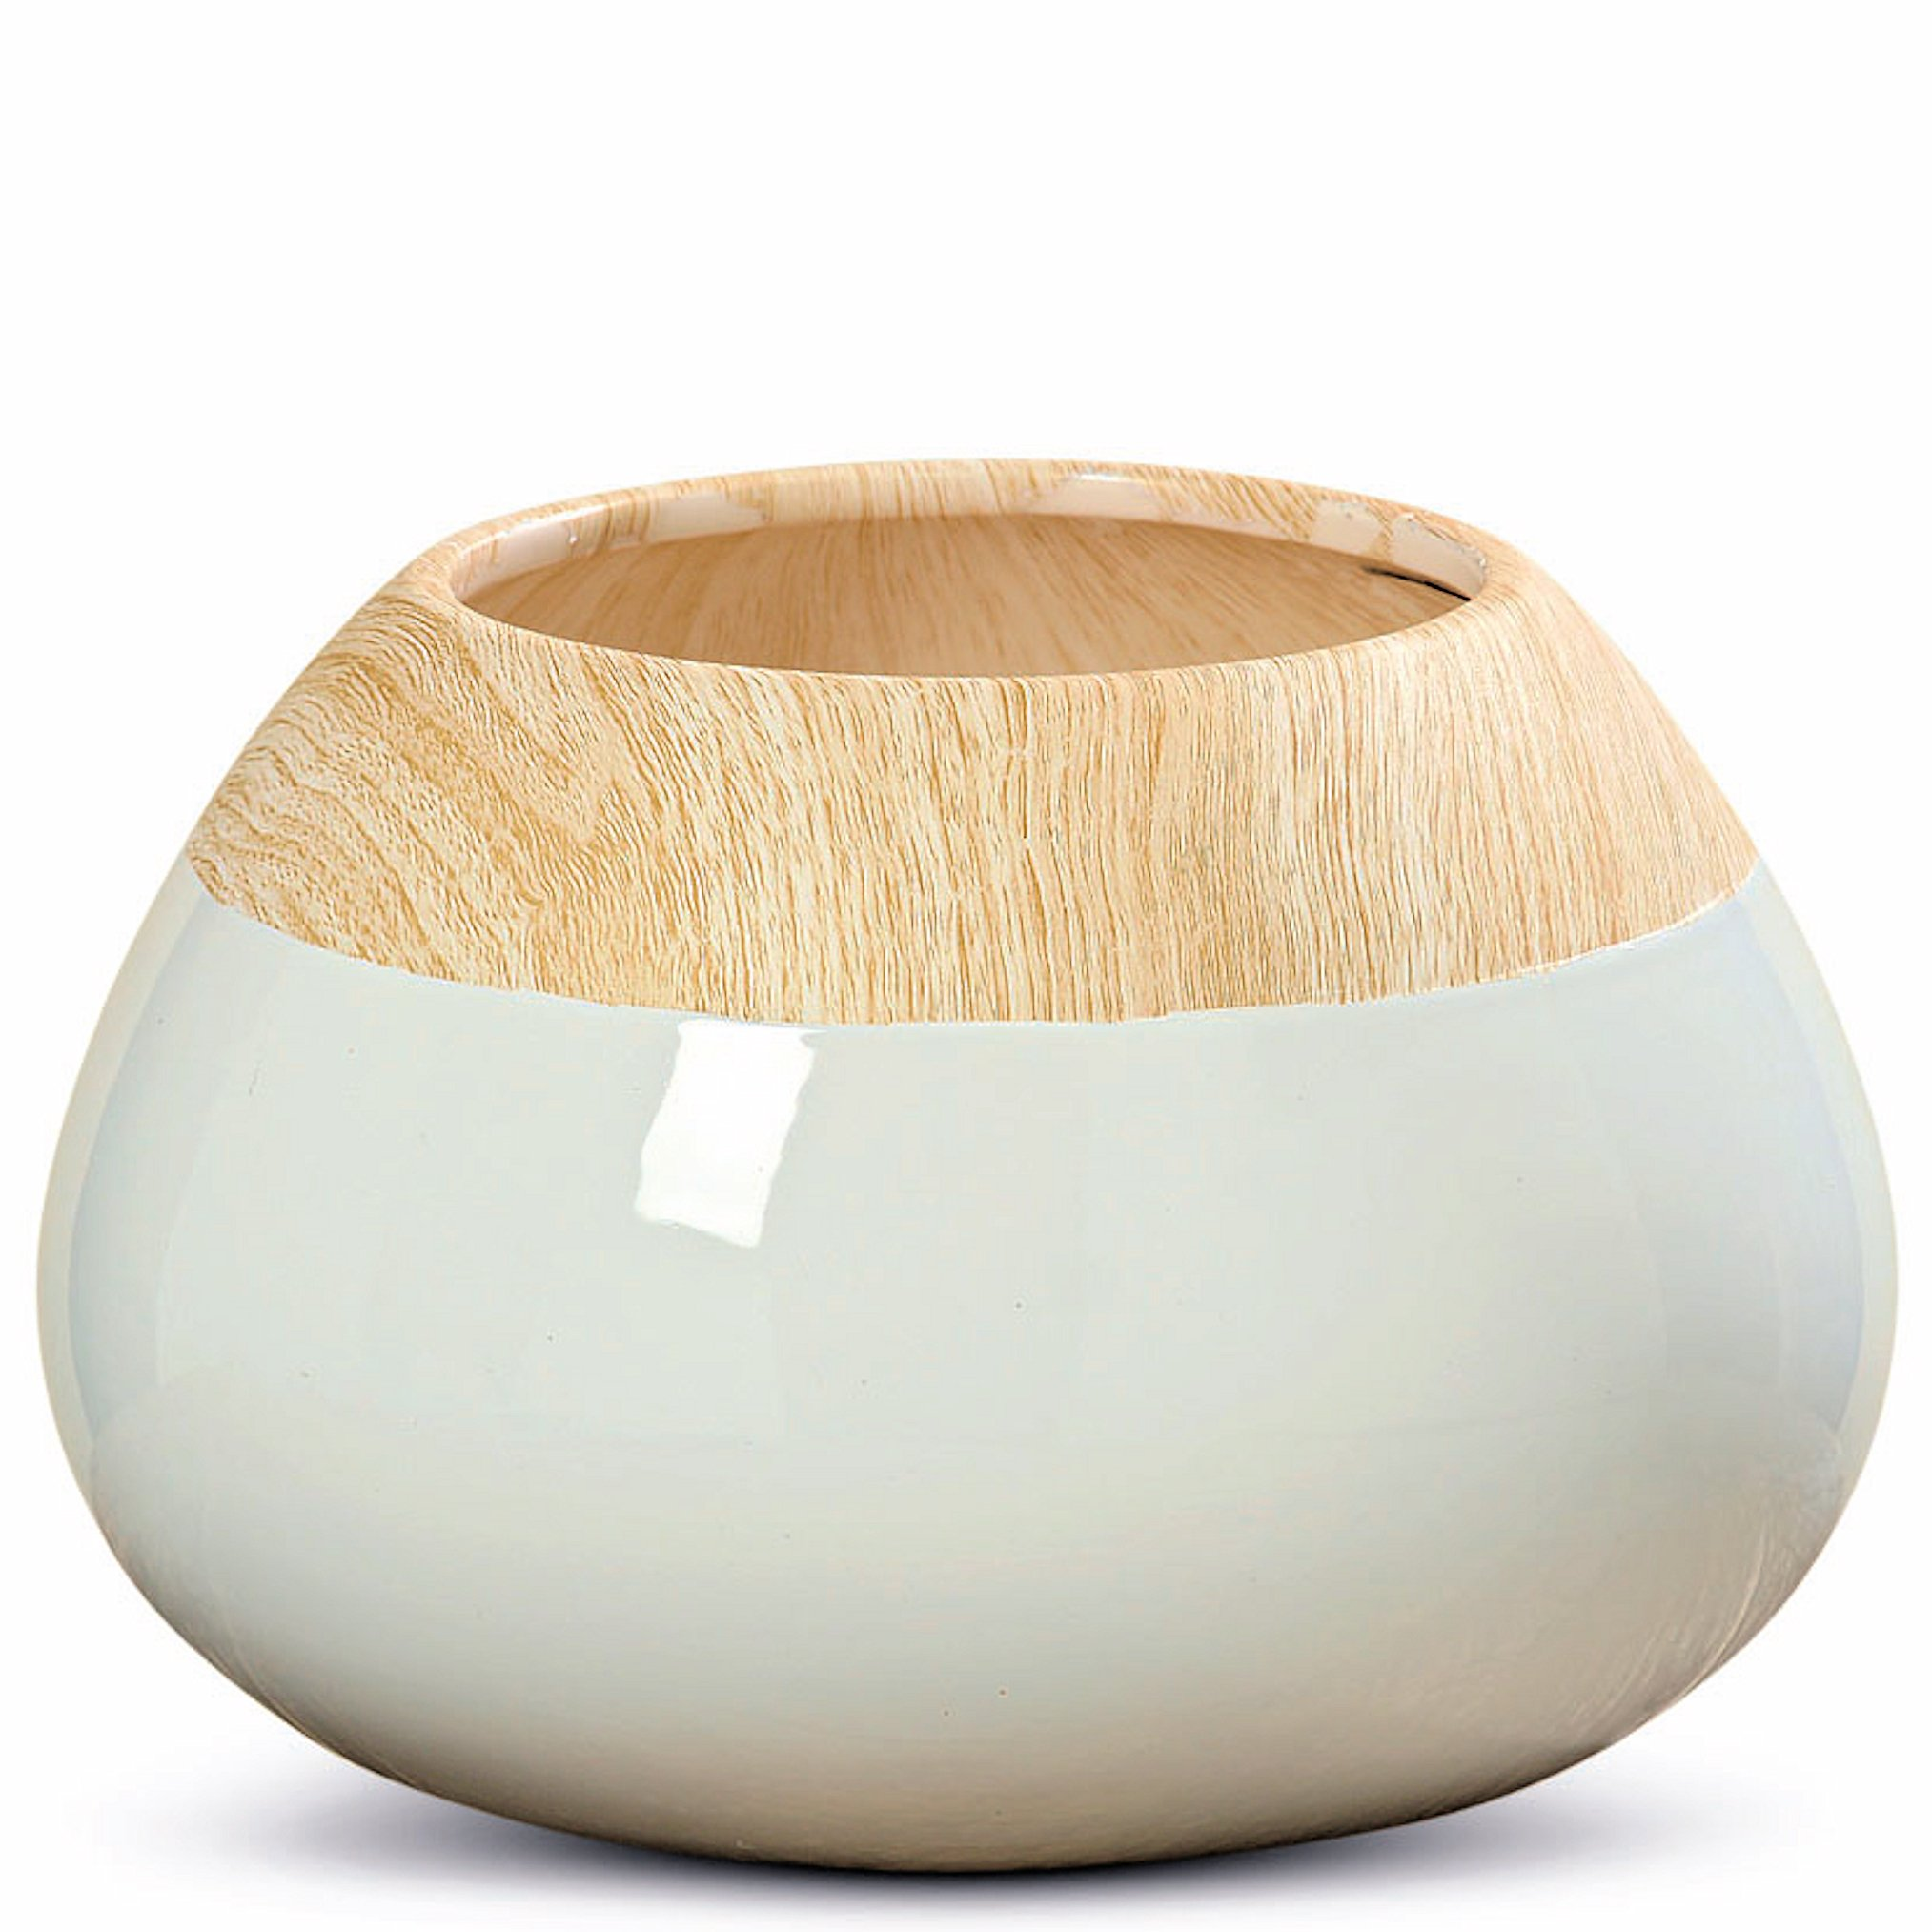 Whole House Worlds The Crosby Street Chic Northern Belly Vase, Hand Painted Wood Grain Pattern Band, Contrasting White Body, Glazed Ceramic, 6¼ Inches High, By